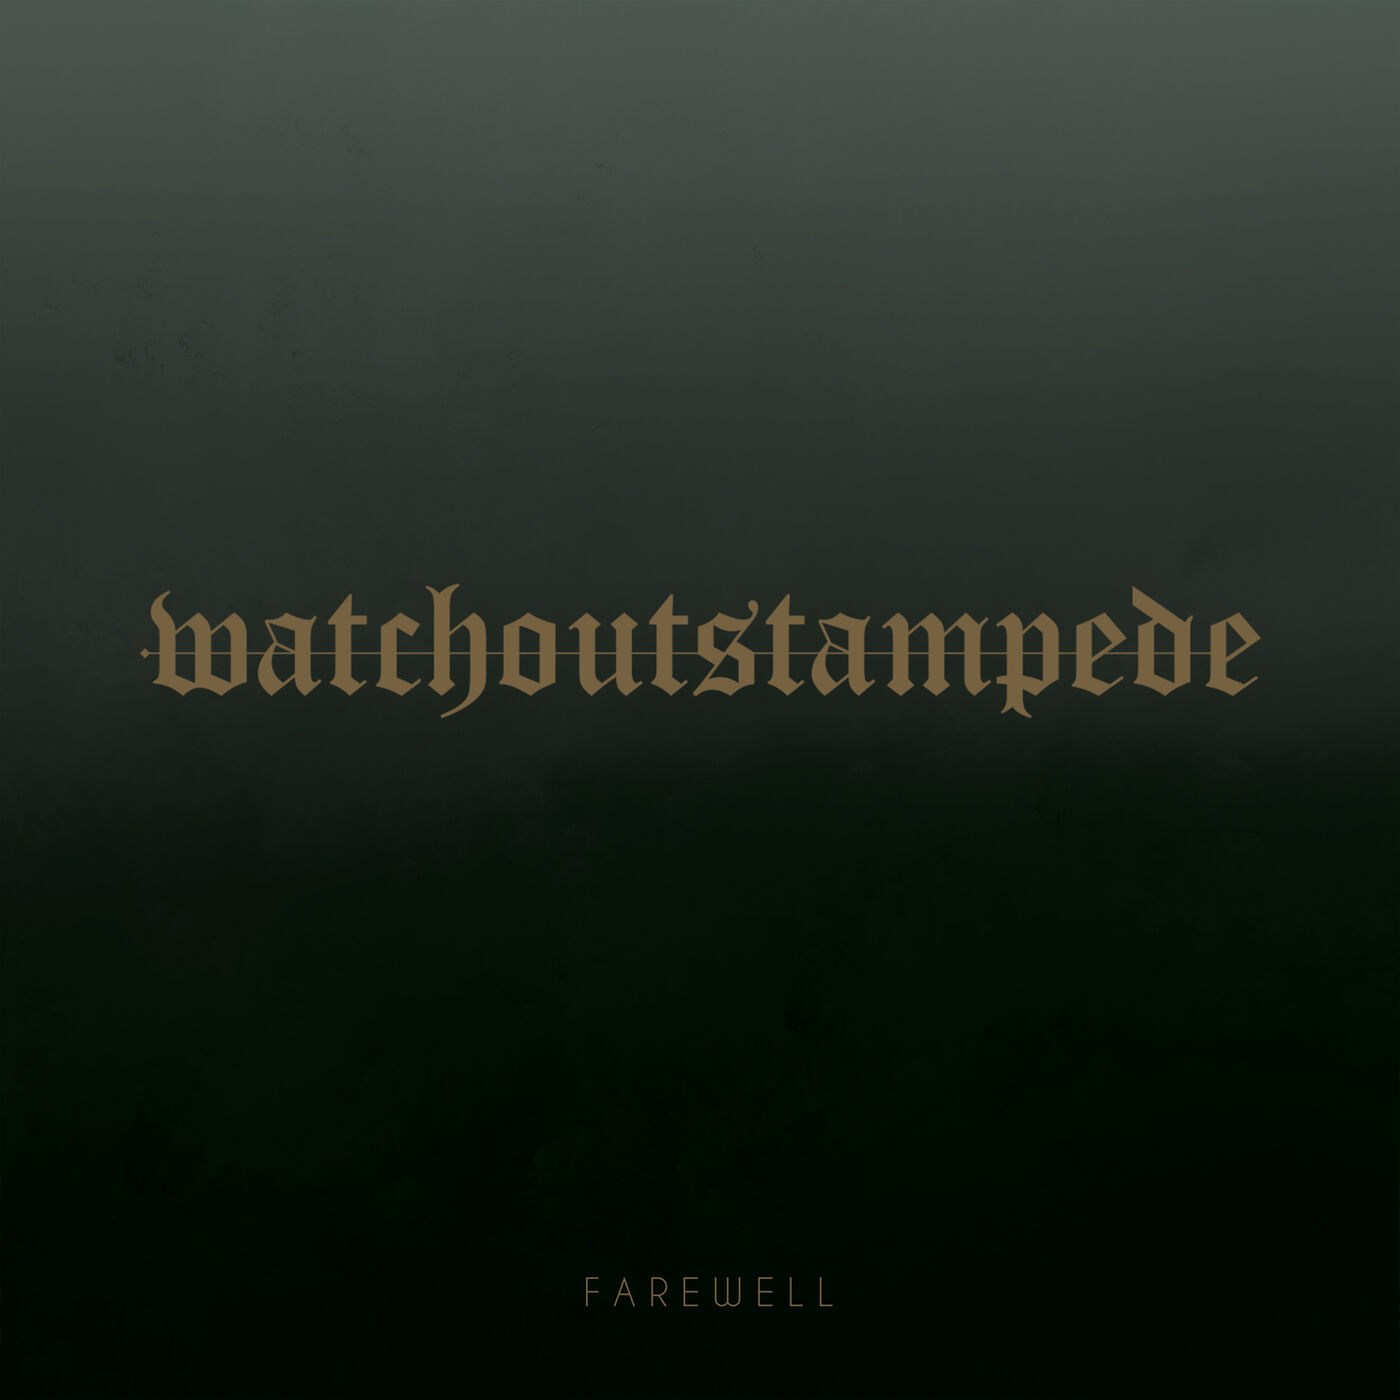 Watch Out Stampede - Farewell [single] (2019)